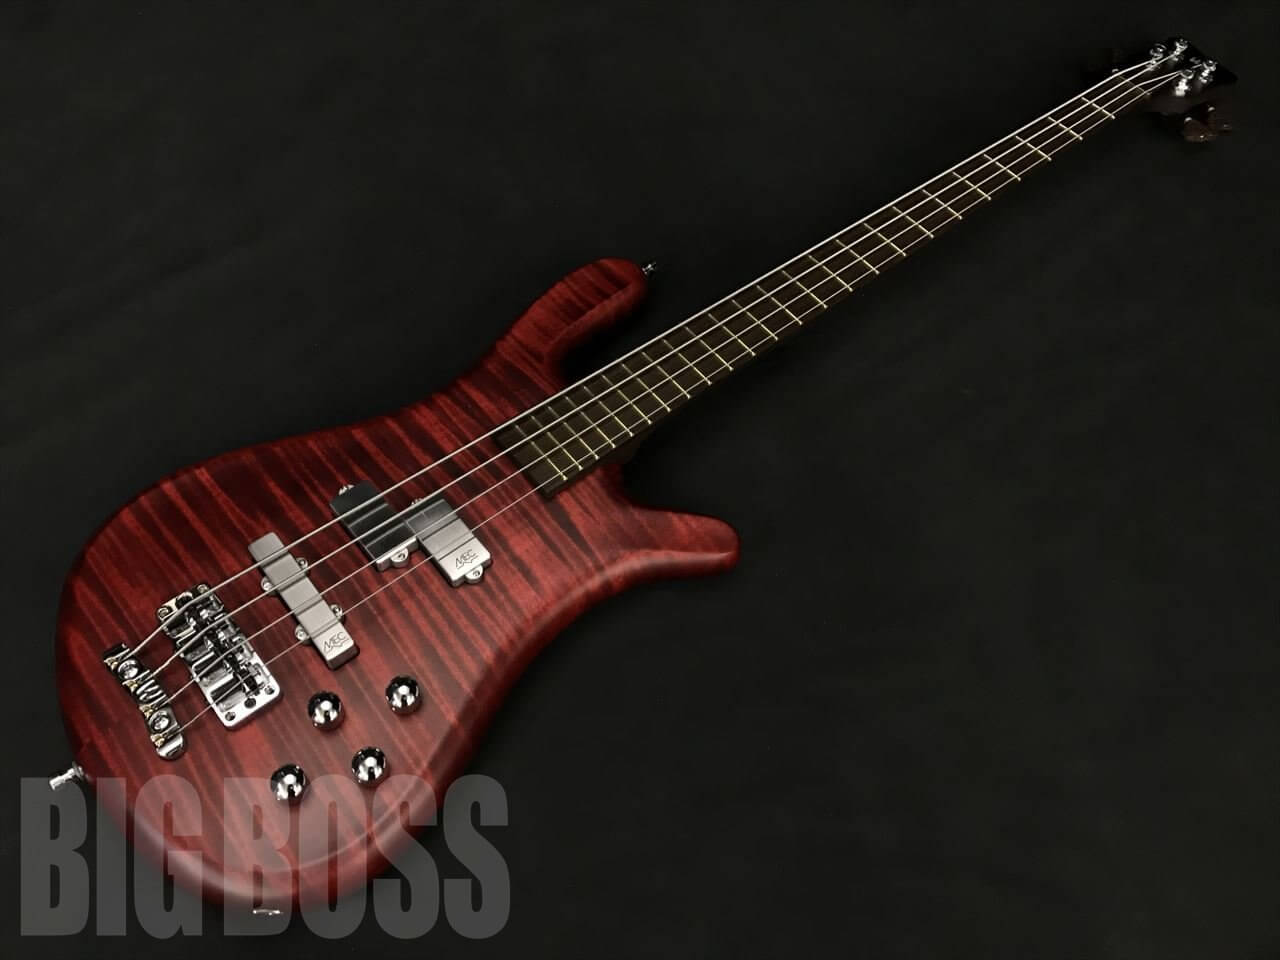 【即納可能】Warwick(ワーウィック) Custom Shop Streamer LX 4 (Burgundy Red Transparent Satin) 駅前店